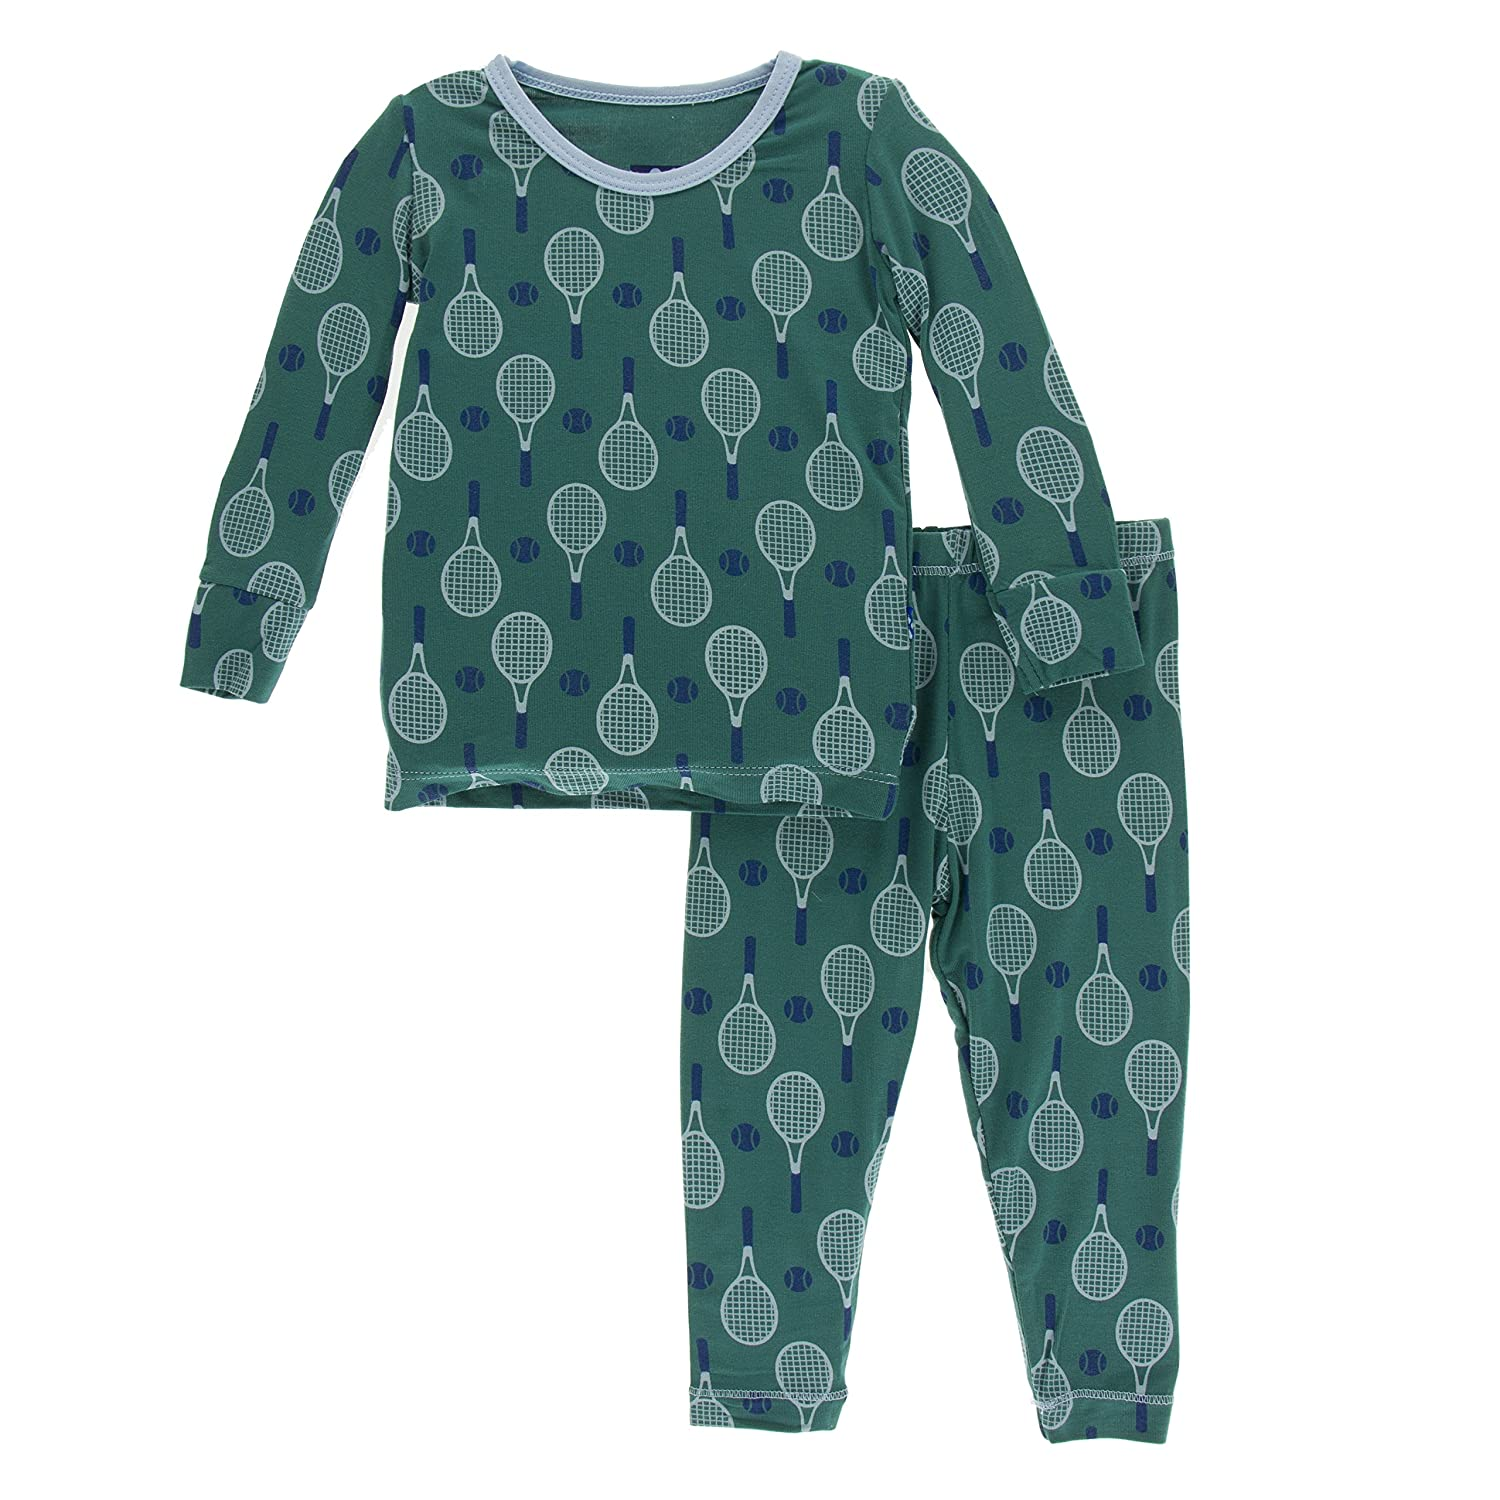 c2ad53655 Amazon.com  Kickee Pants Print Short Sleeve Pajama Set  Infant And ...